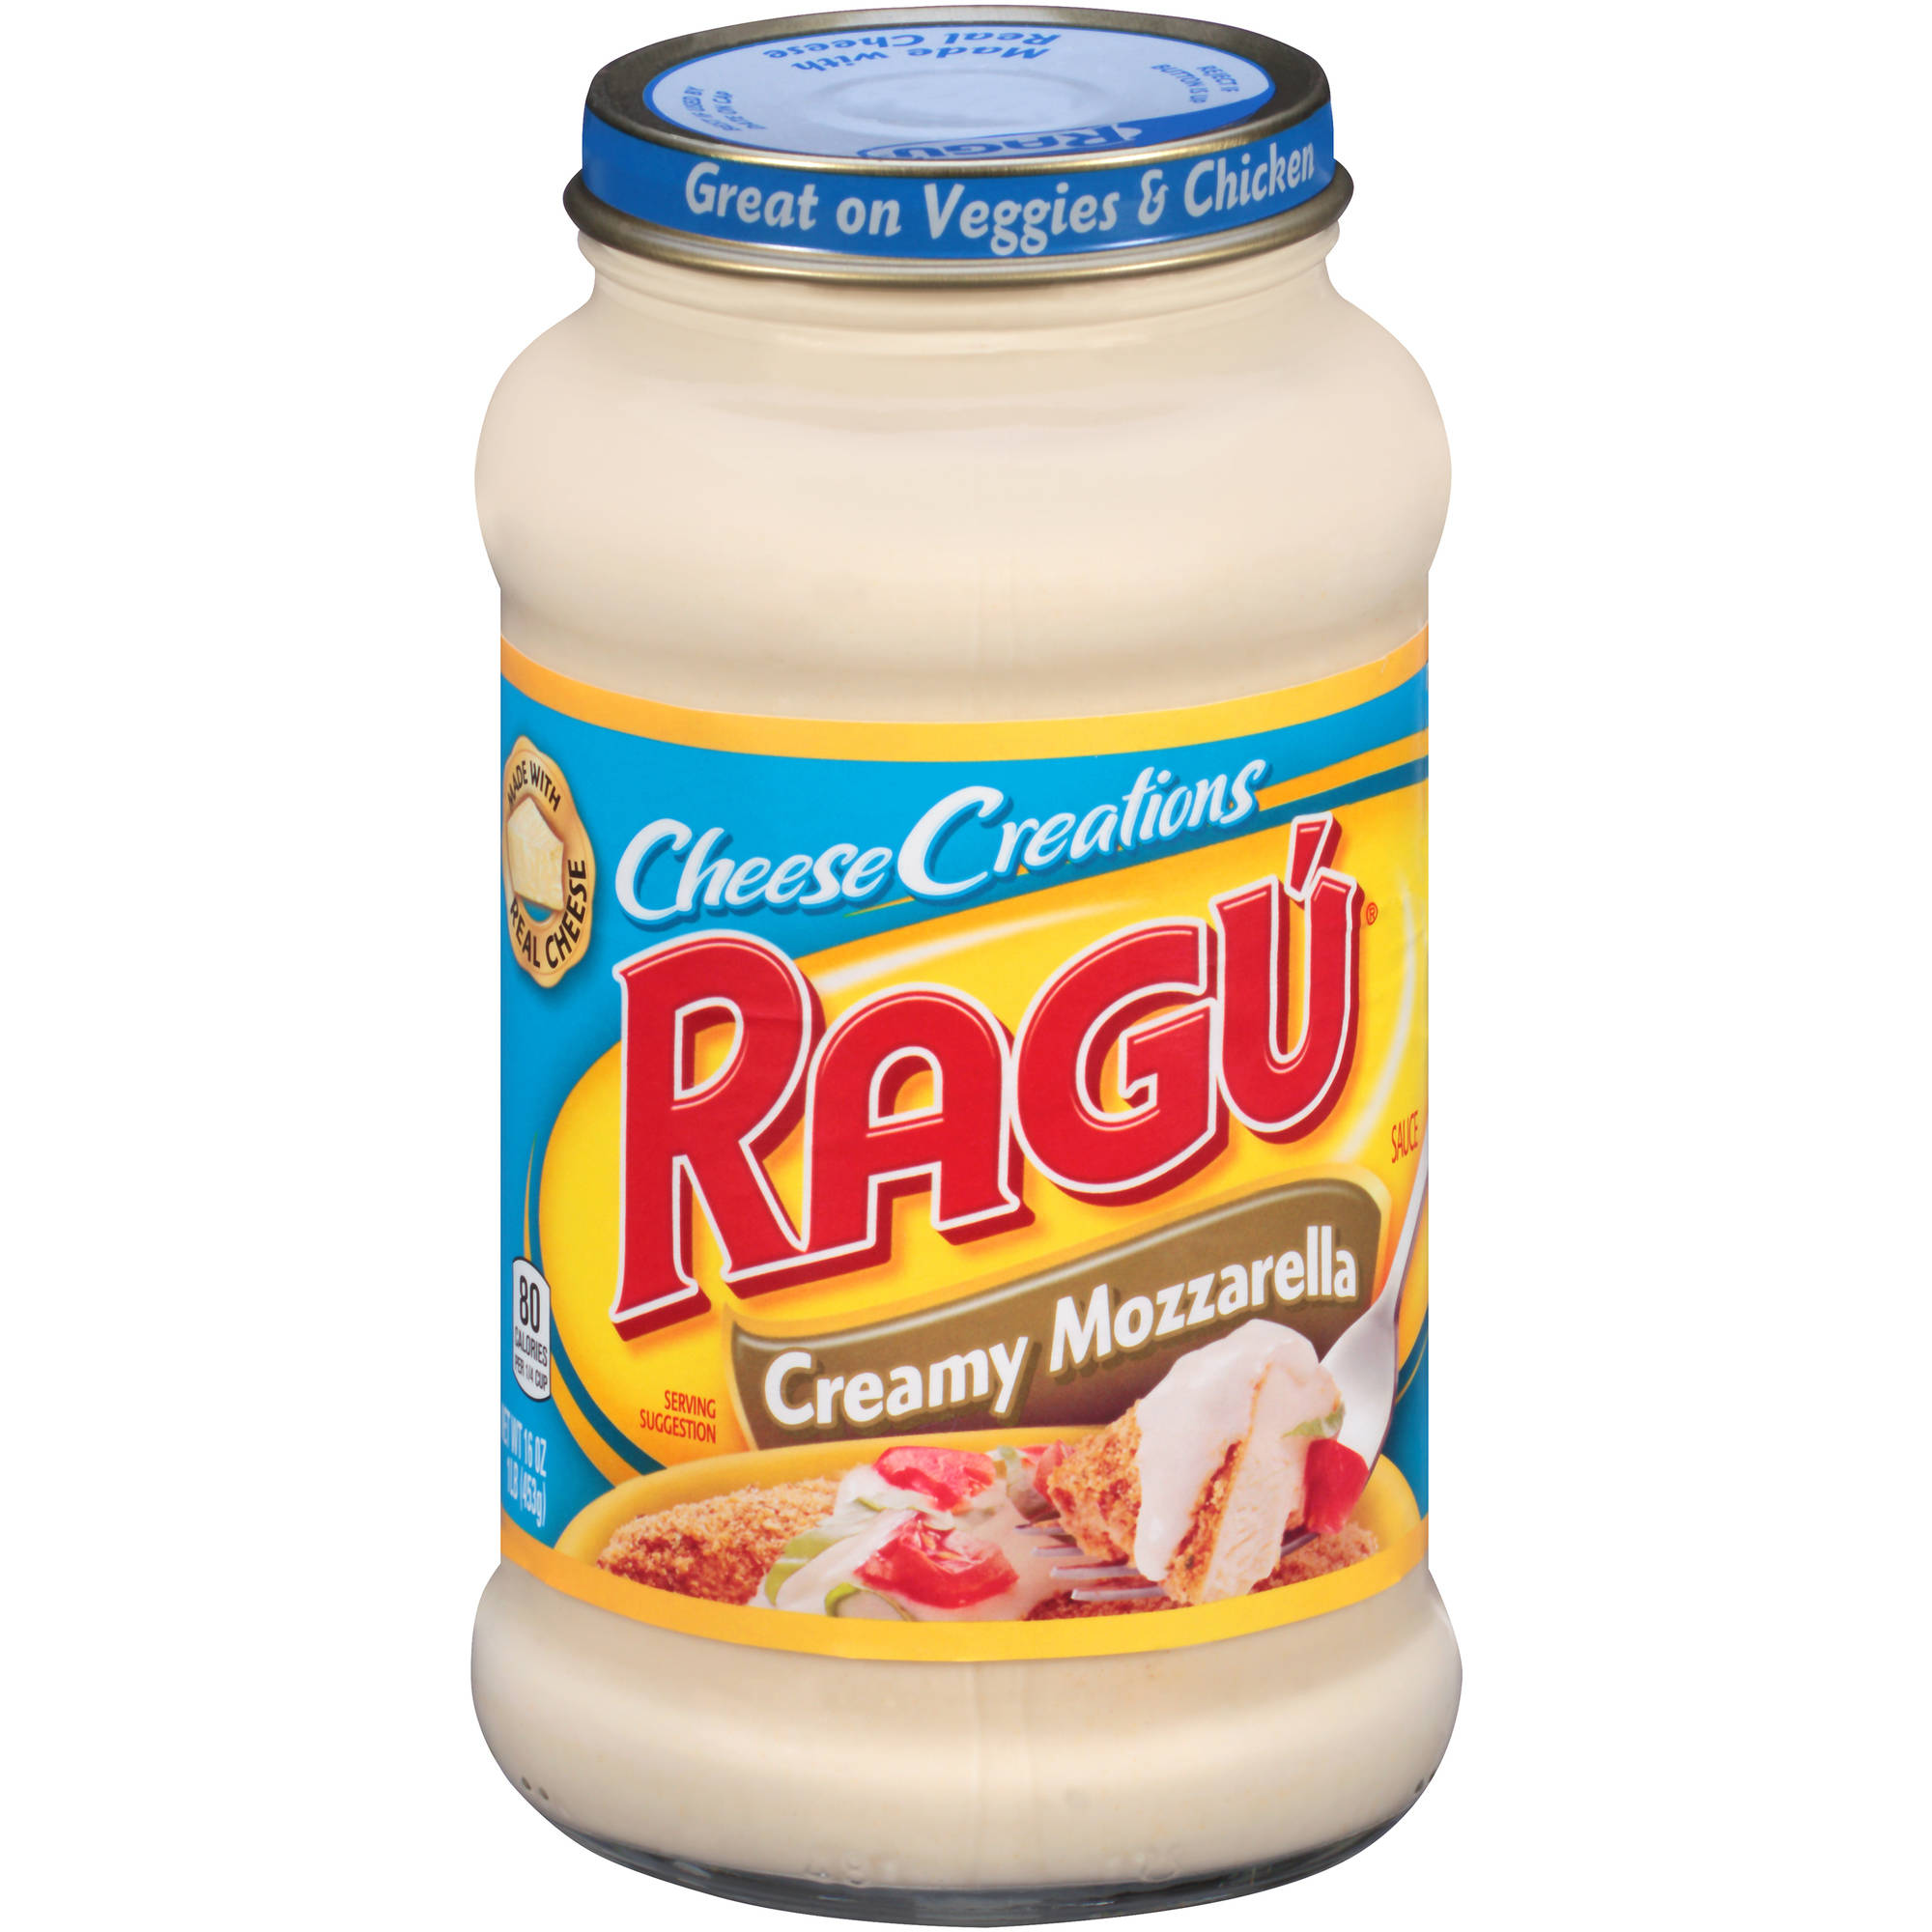 Ragu Cheese Creations Creamy Mozzarella Pasta Sauce, 16 oz